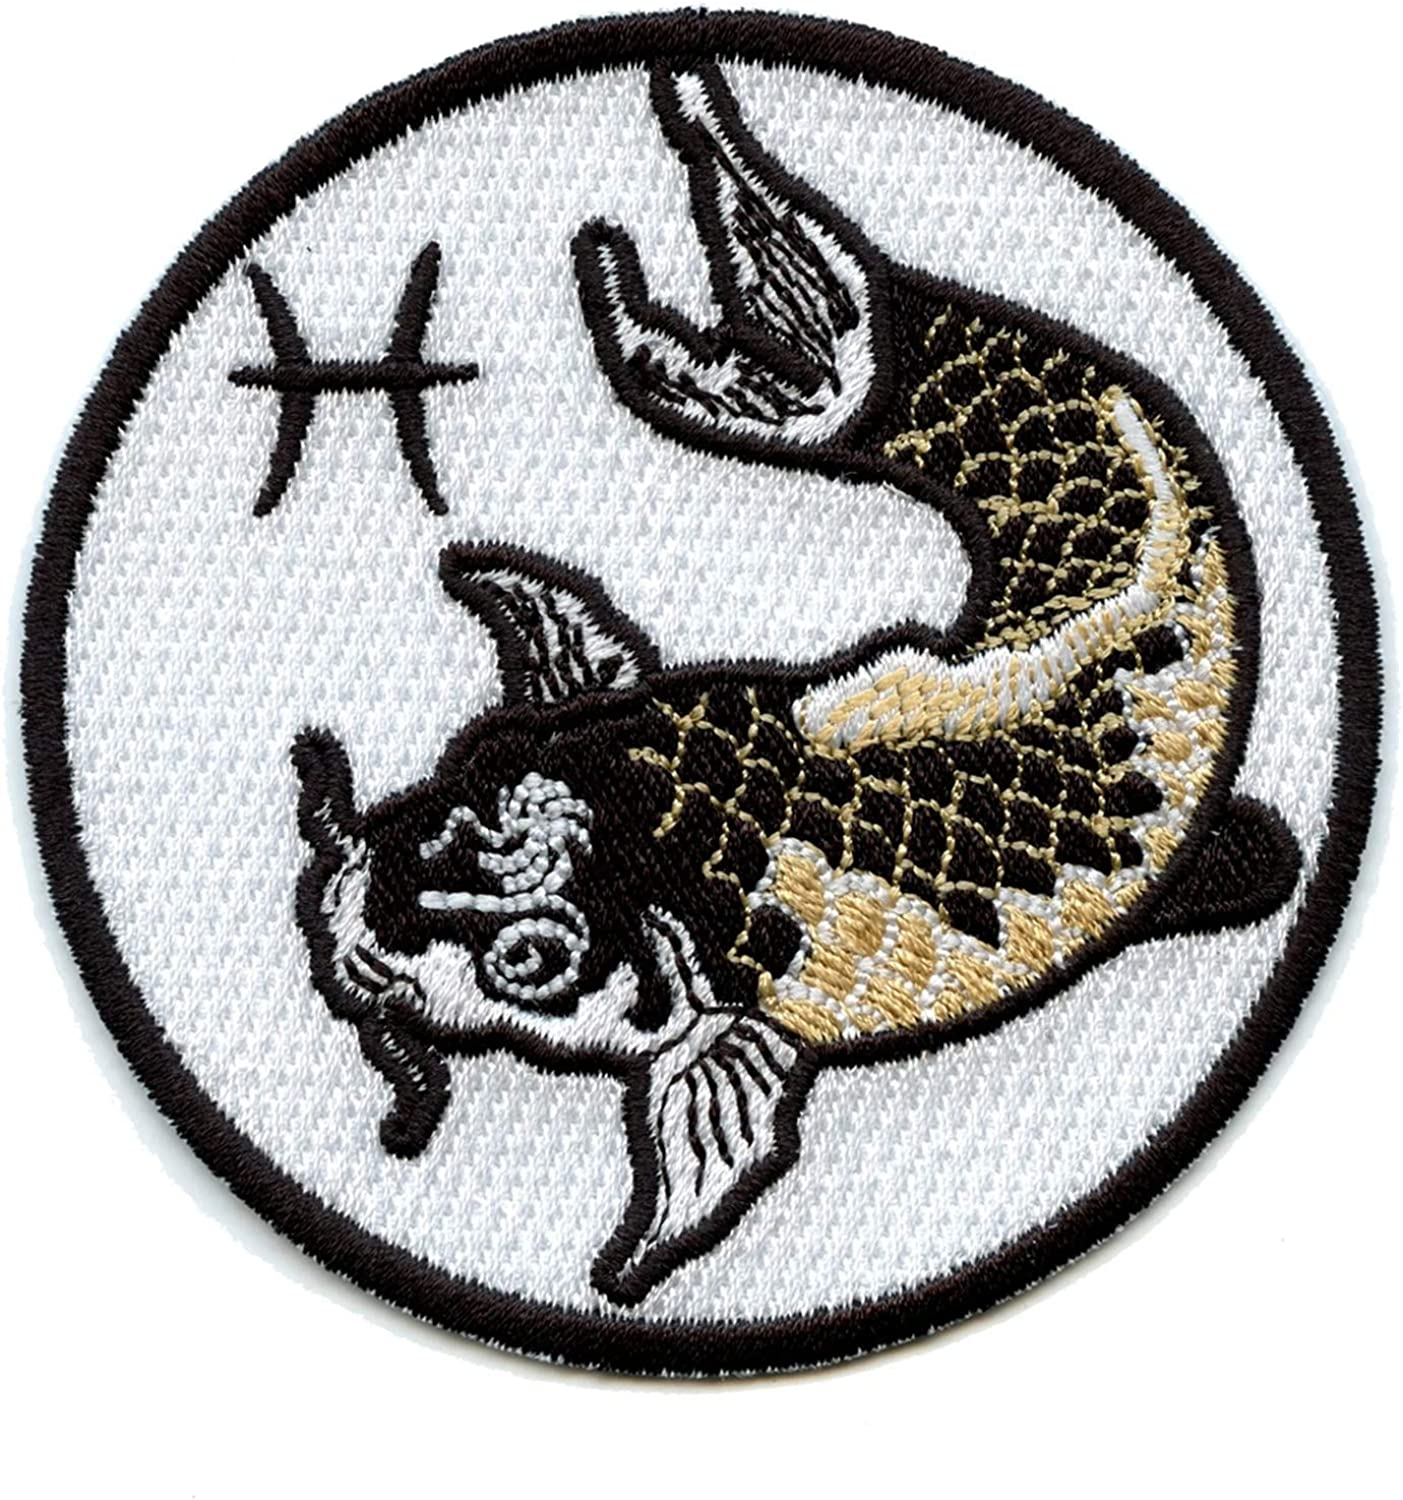 Patch Badge Patch Embroidered Printed Thermoadhesive Sign Zodiac Fish